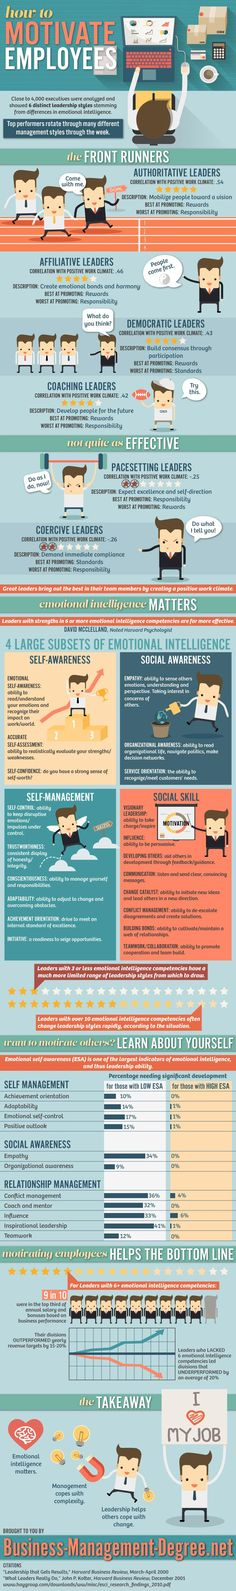 How to Become an Inspirational Leader (Infographic) #ideatevision http://www.ideatevision.com